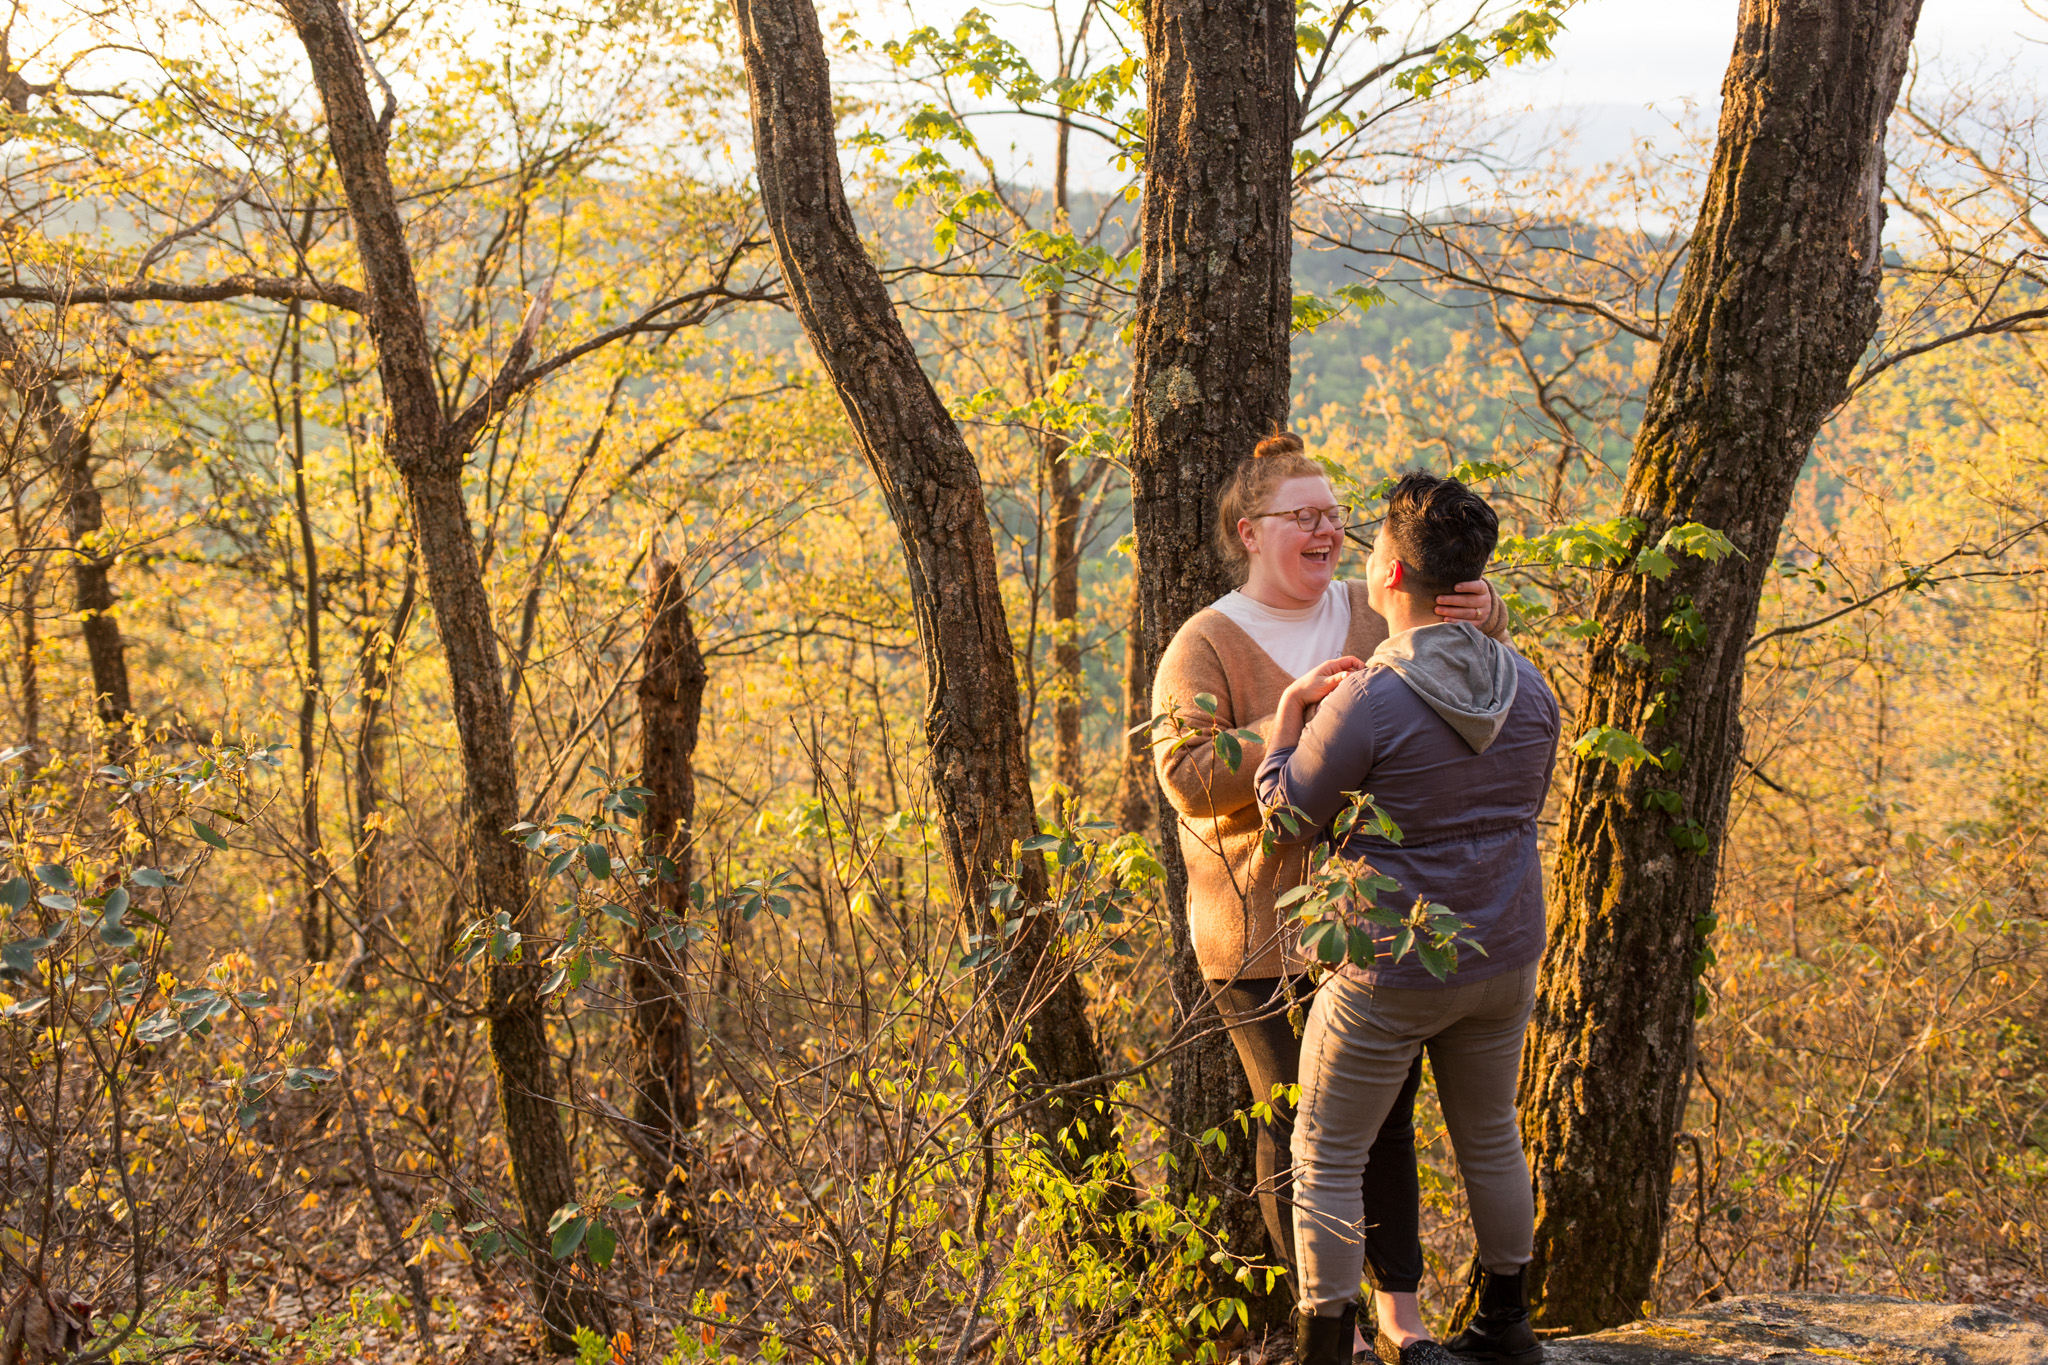 LightCreative_201904_AlexanBecky_Raleigh_Proposal_Photography_030_blog.jpg